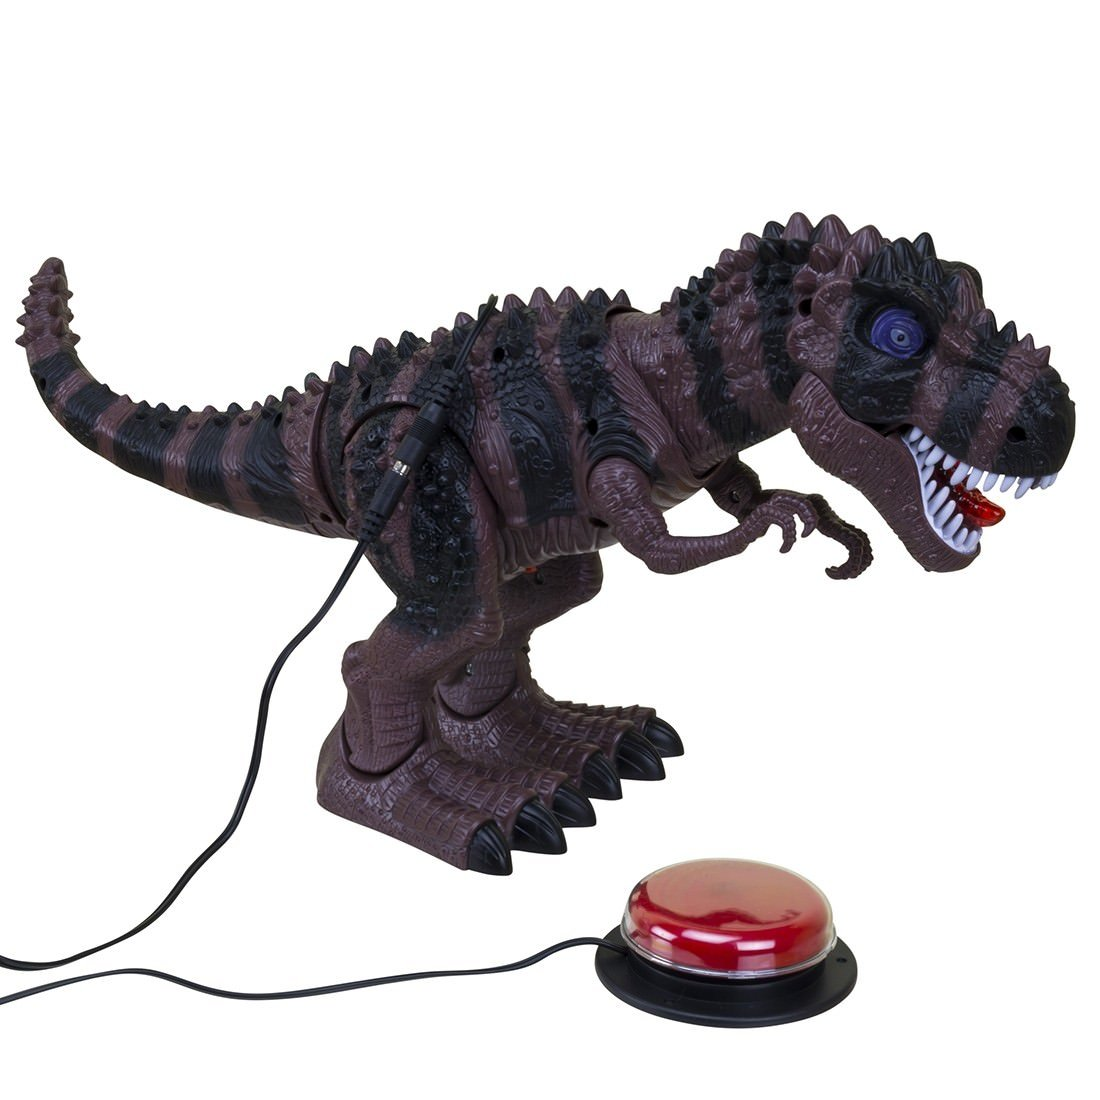 Ablenet Switch Adapted Toy Walking T-Rex 30000035 by Ablenet (Image #2)